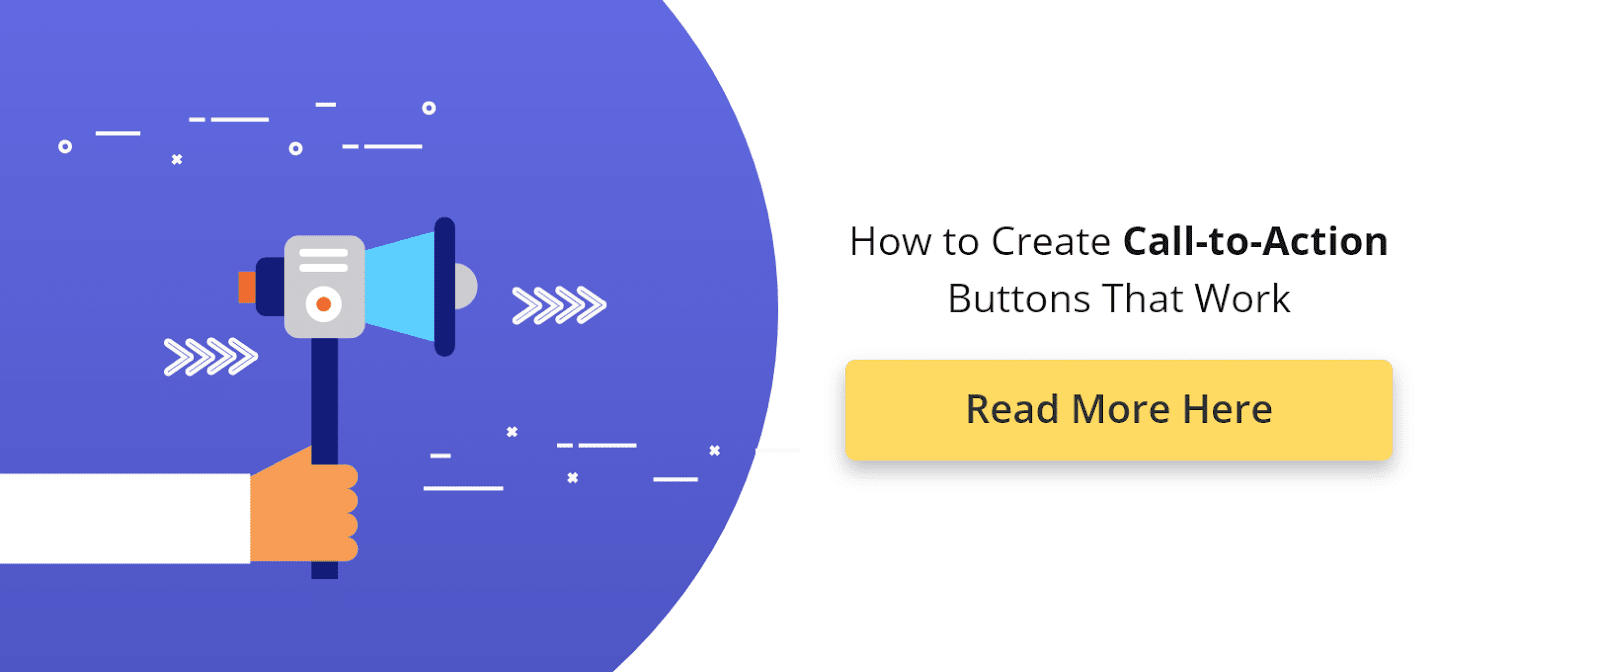 How to Create Call-to-Action Buttons That Work - DevriX